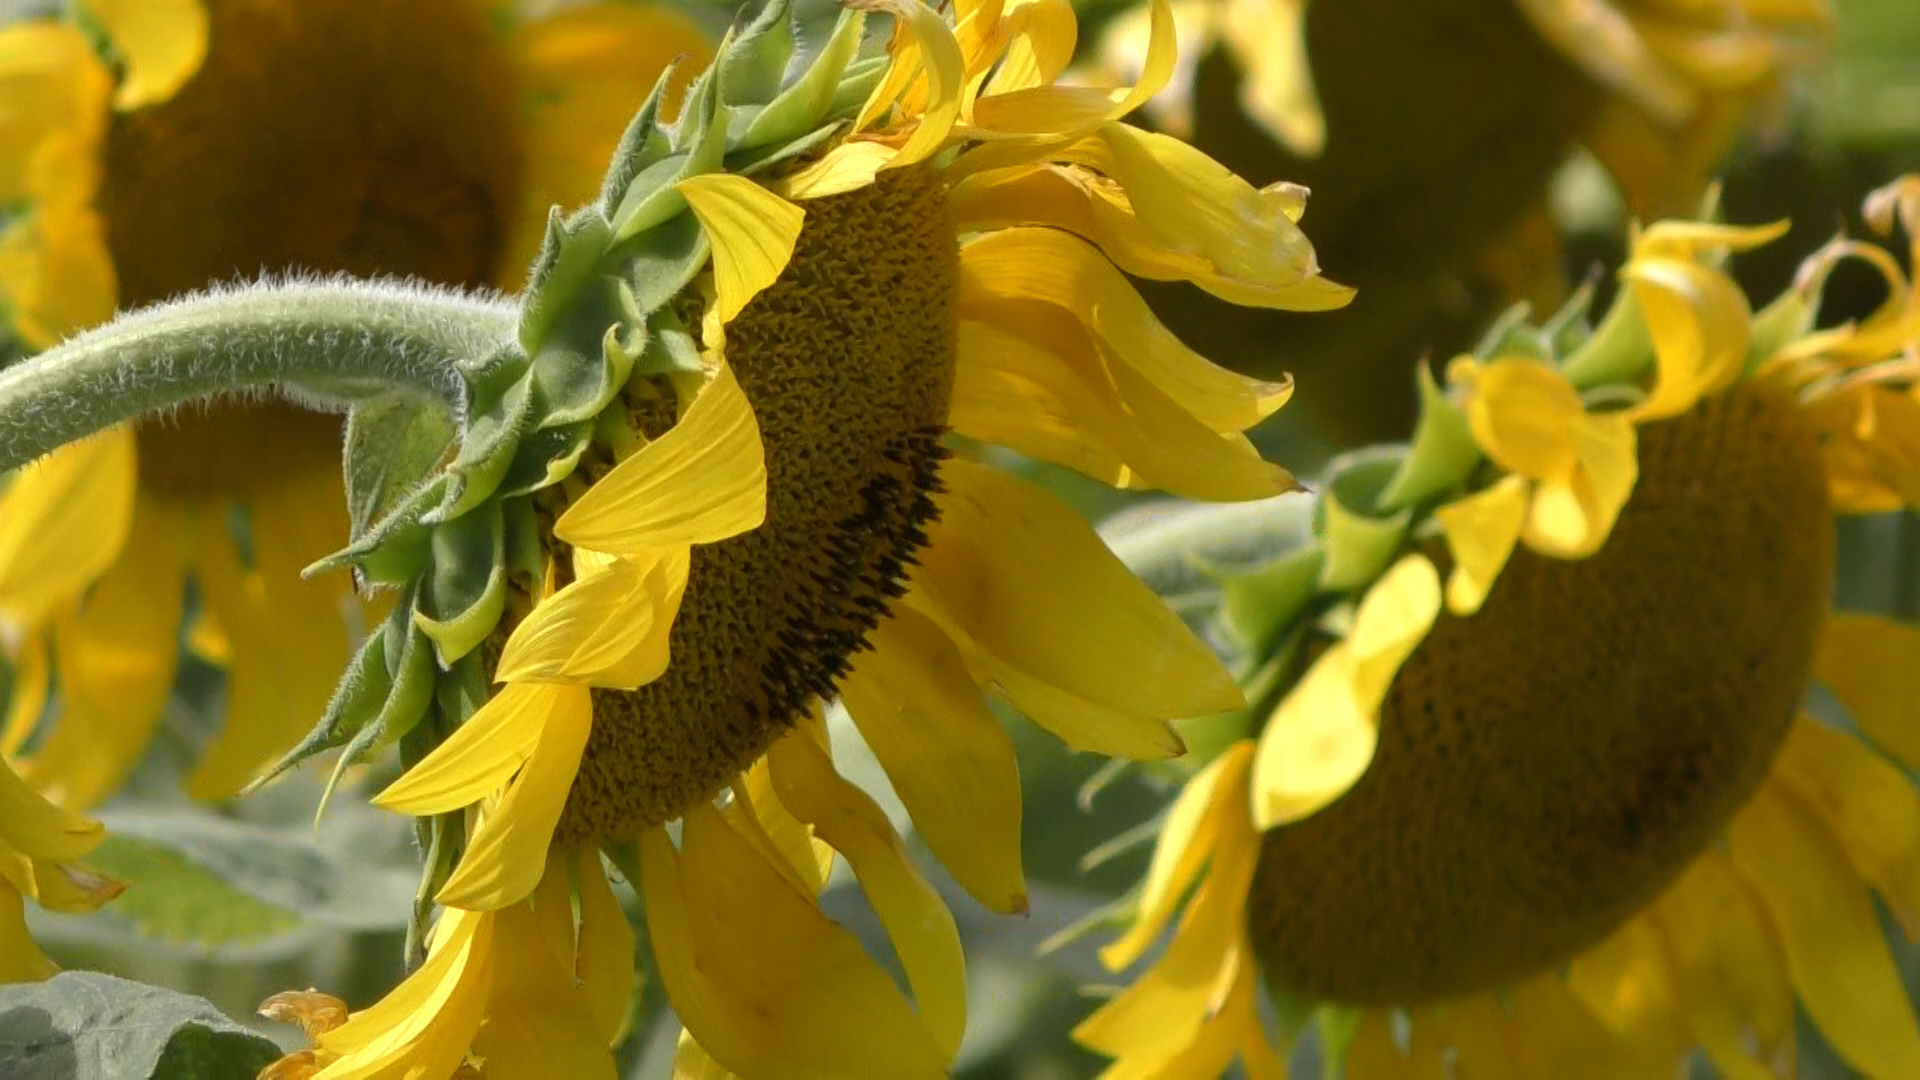 Get the Scoop on those Maui Sunflowers!